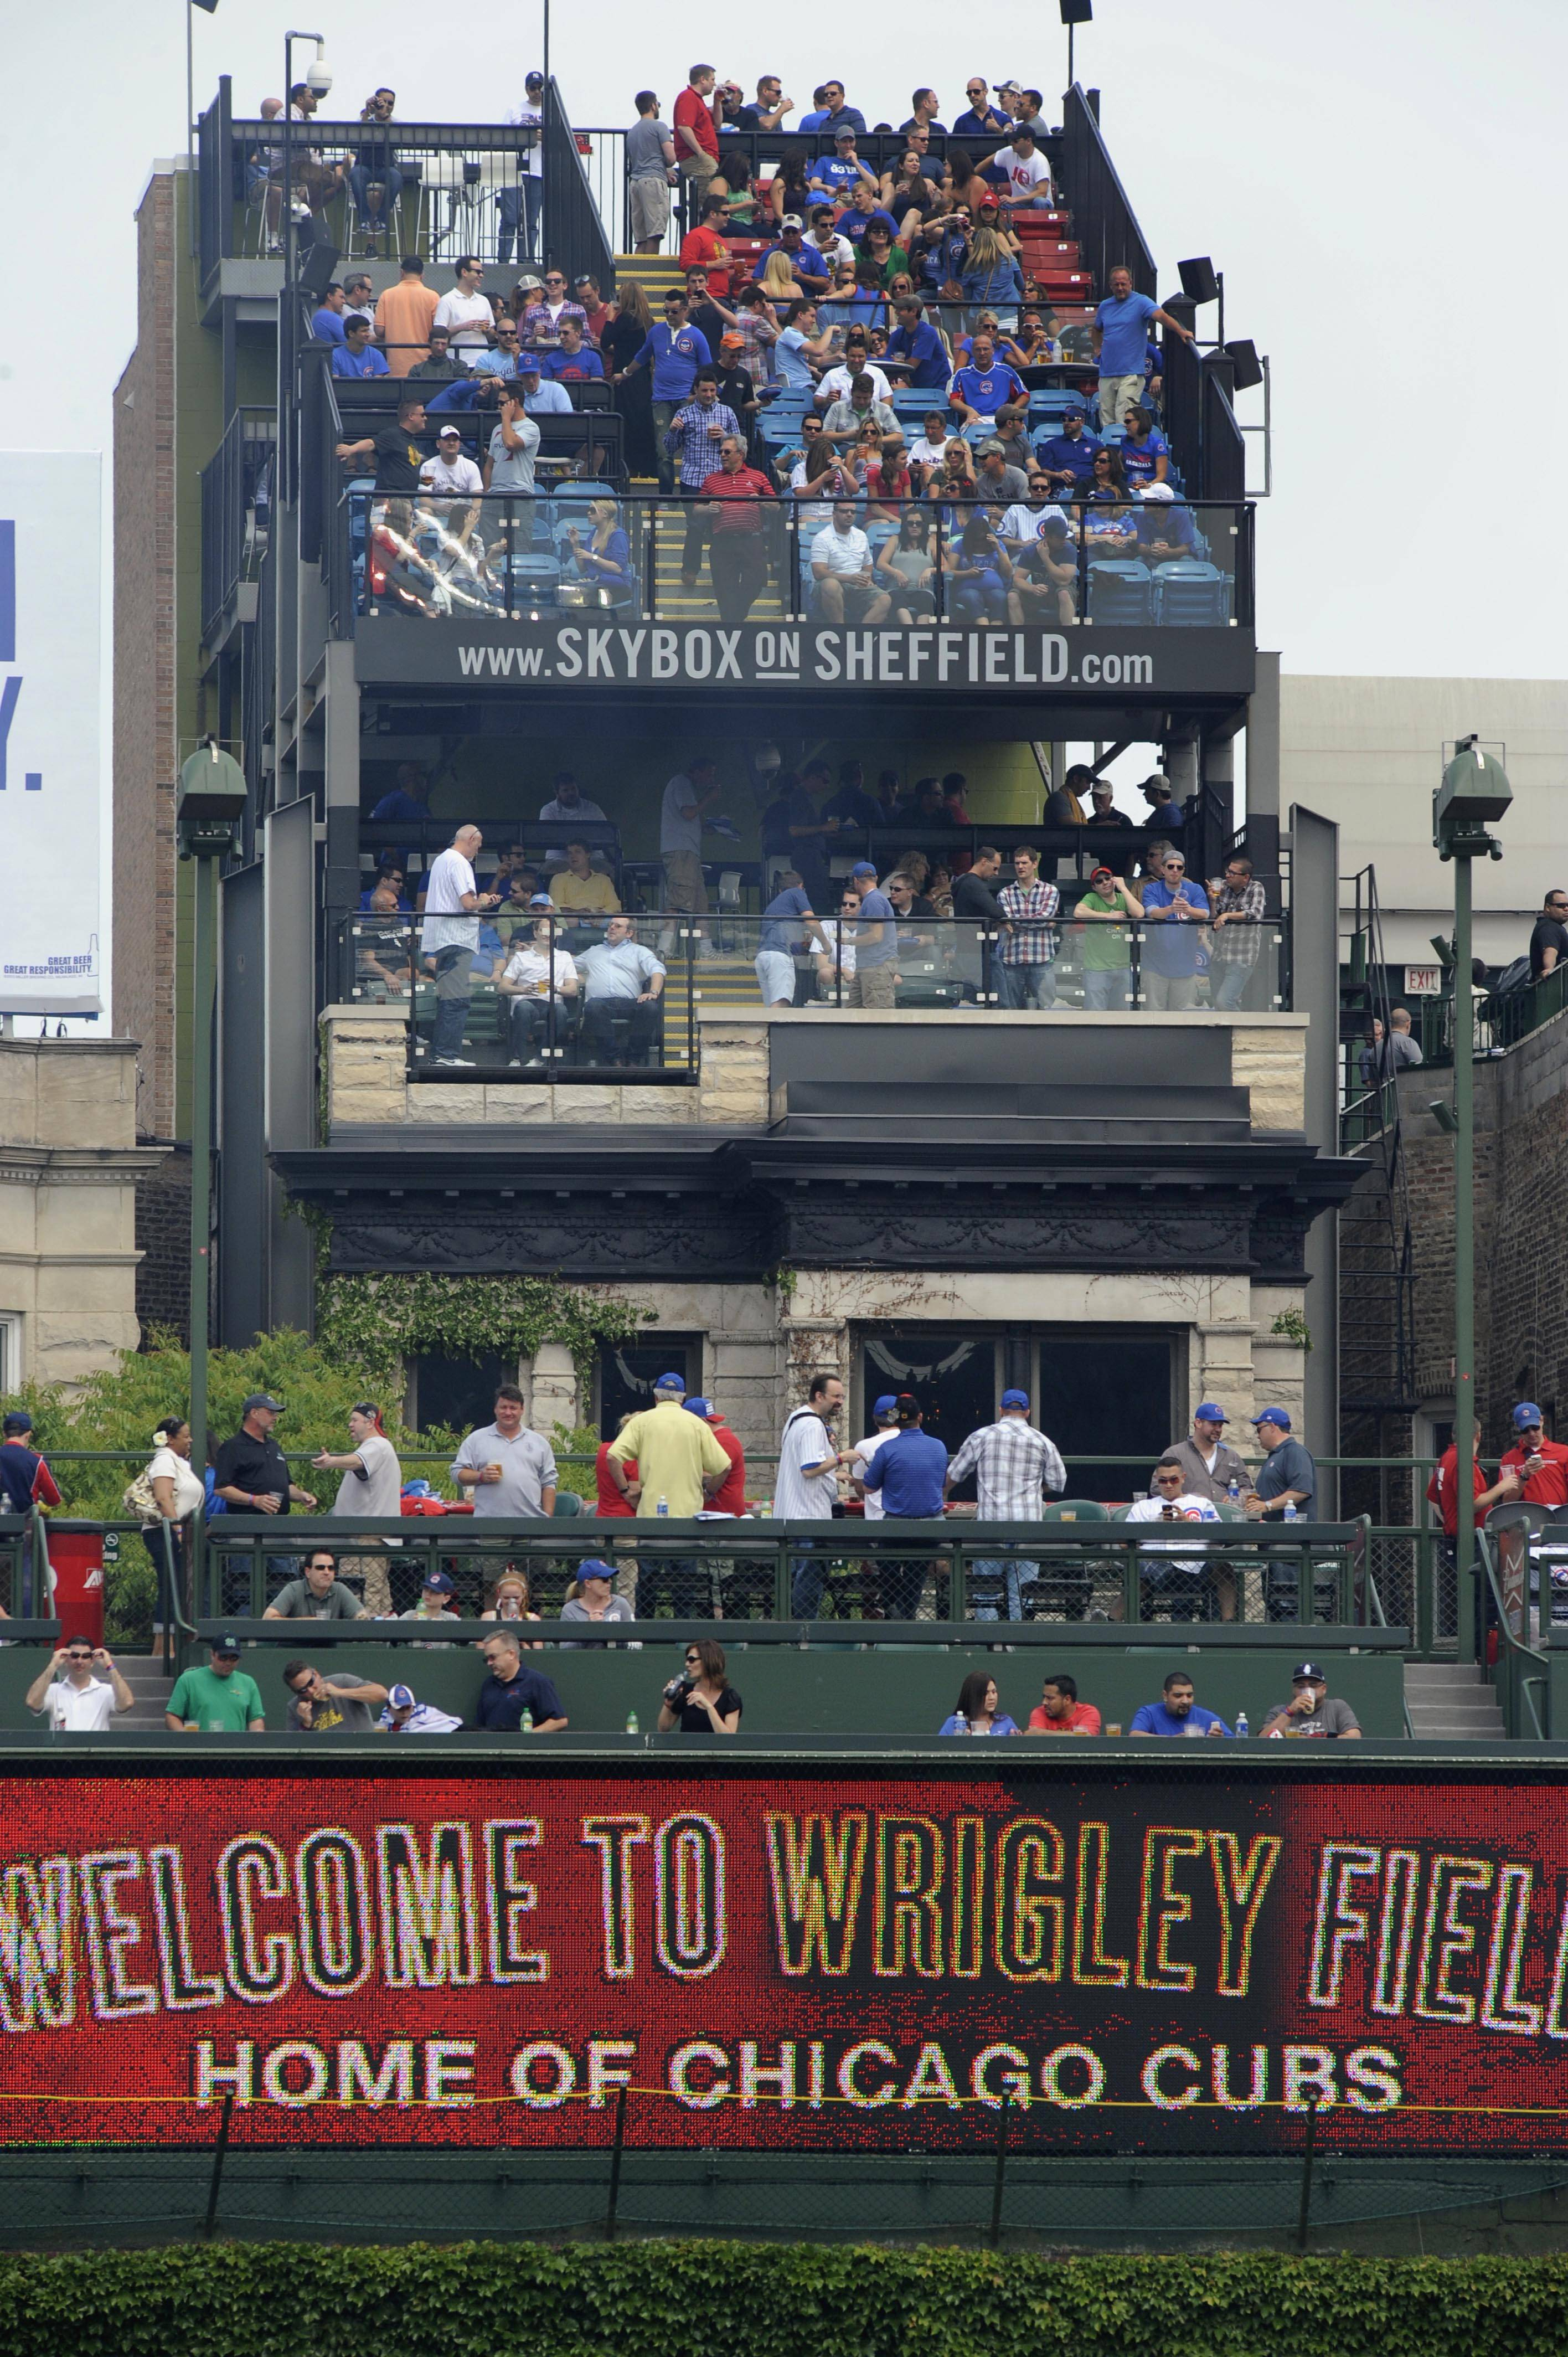 Ricketts excited about moving forward on Wrigley